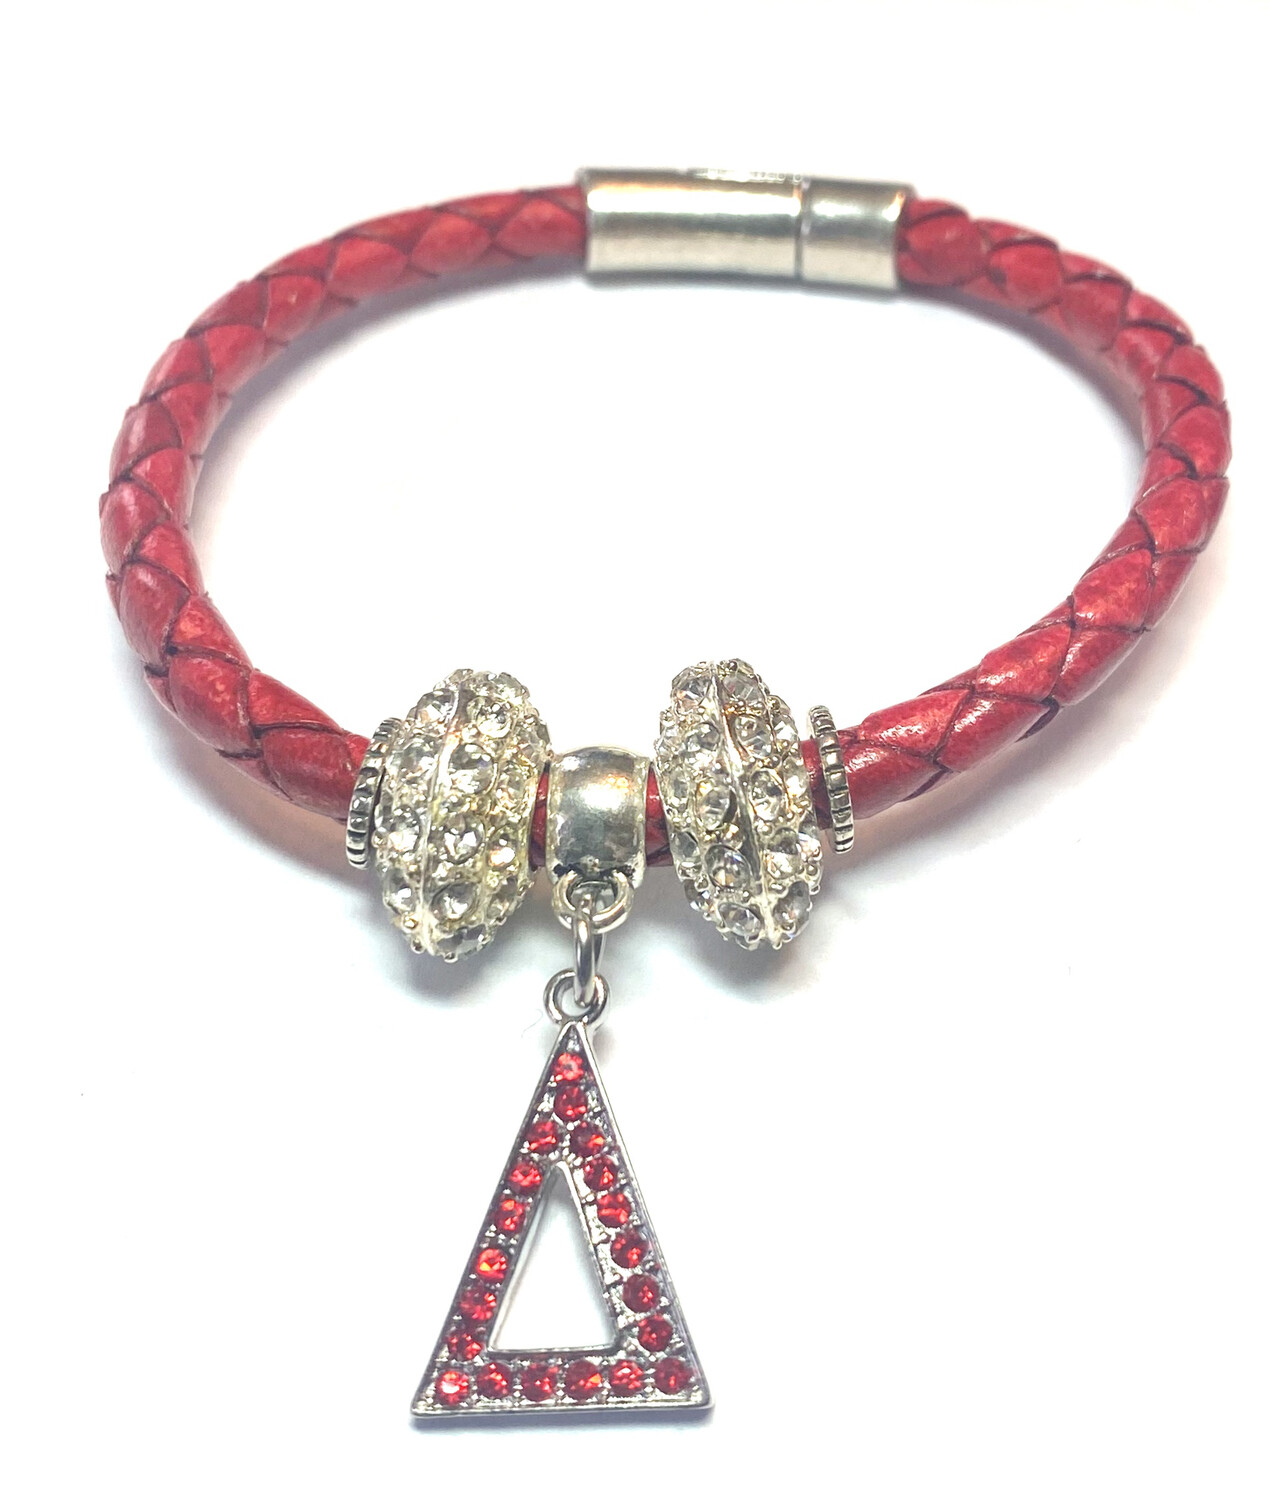 Bracelet | Red Leather Rope With Pyramid Bling Classy Creations Originals